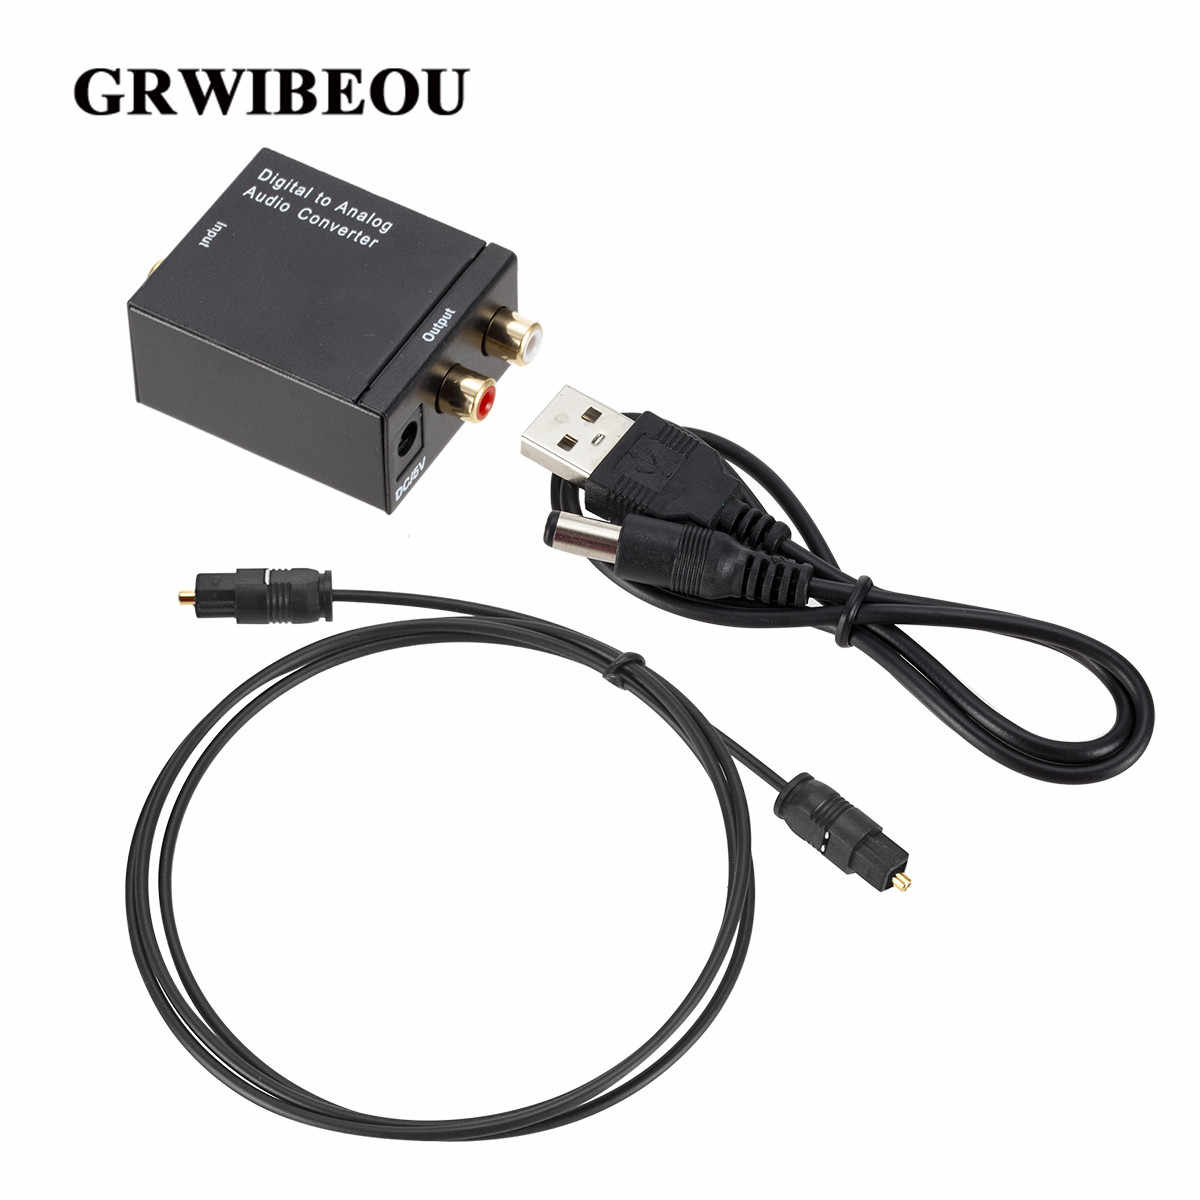 Grwibeou convertitore Audio digitale/analogico fibra ottica Toslink segnale coassiale a RCA R/L Decoder Audio SPDIF ATV DAC amplificatore